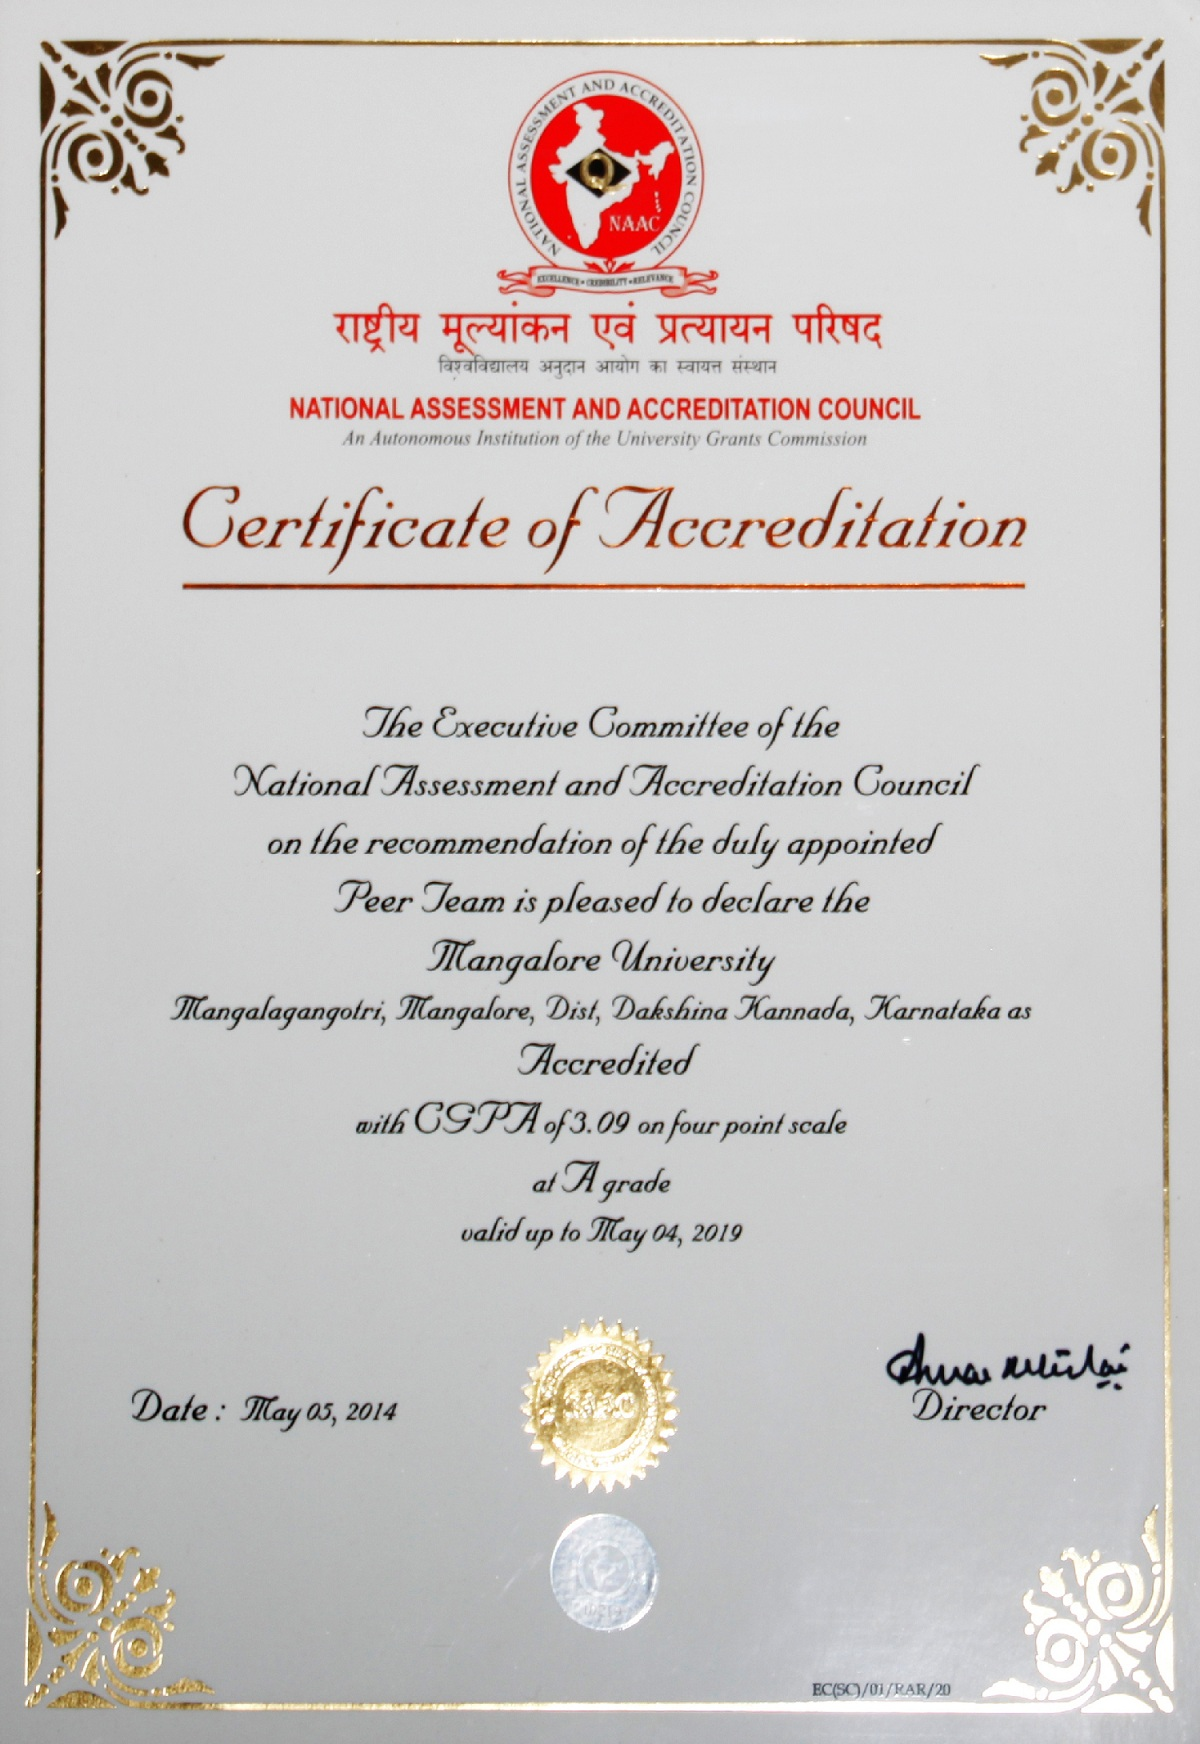 Bcom certificate format sample choice image certificate design sample degree certificate of ksou image collections certificate sample degree certificate of ksou images certificate design yadclub Choice Image